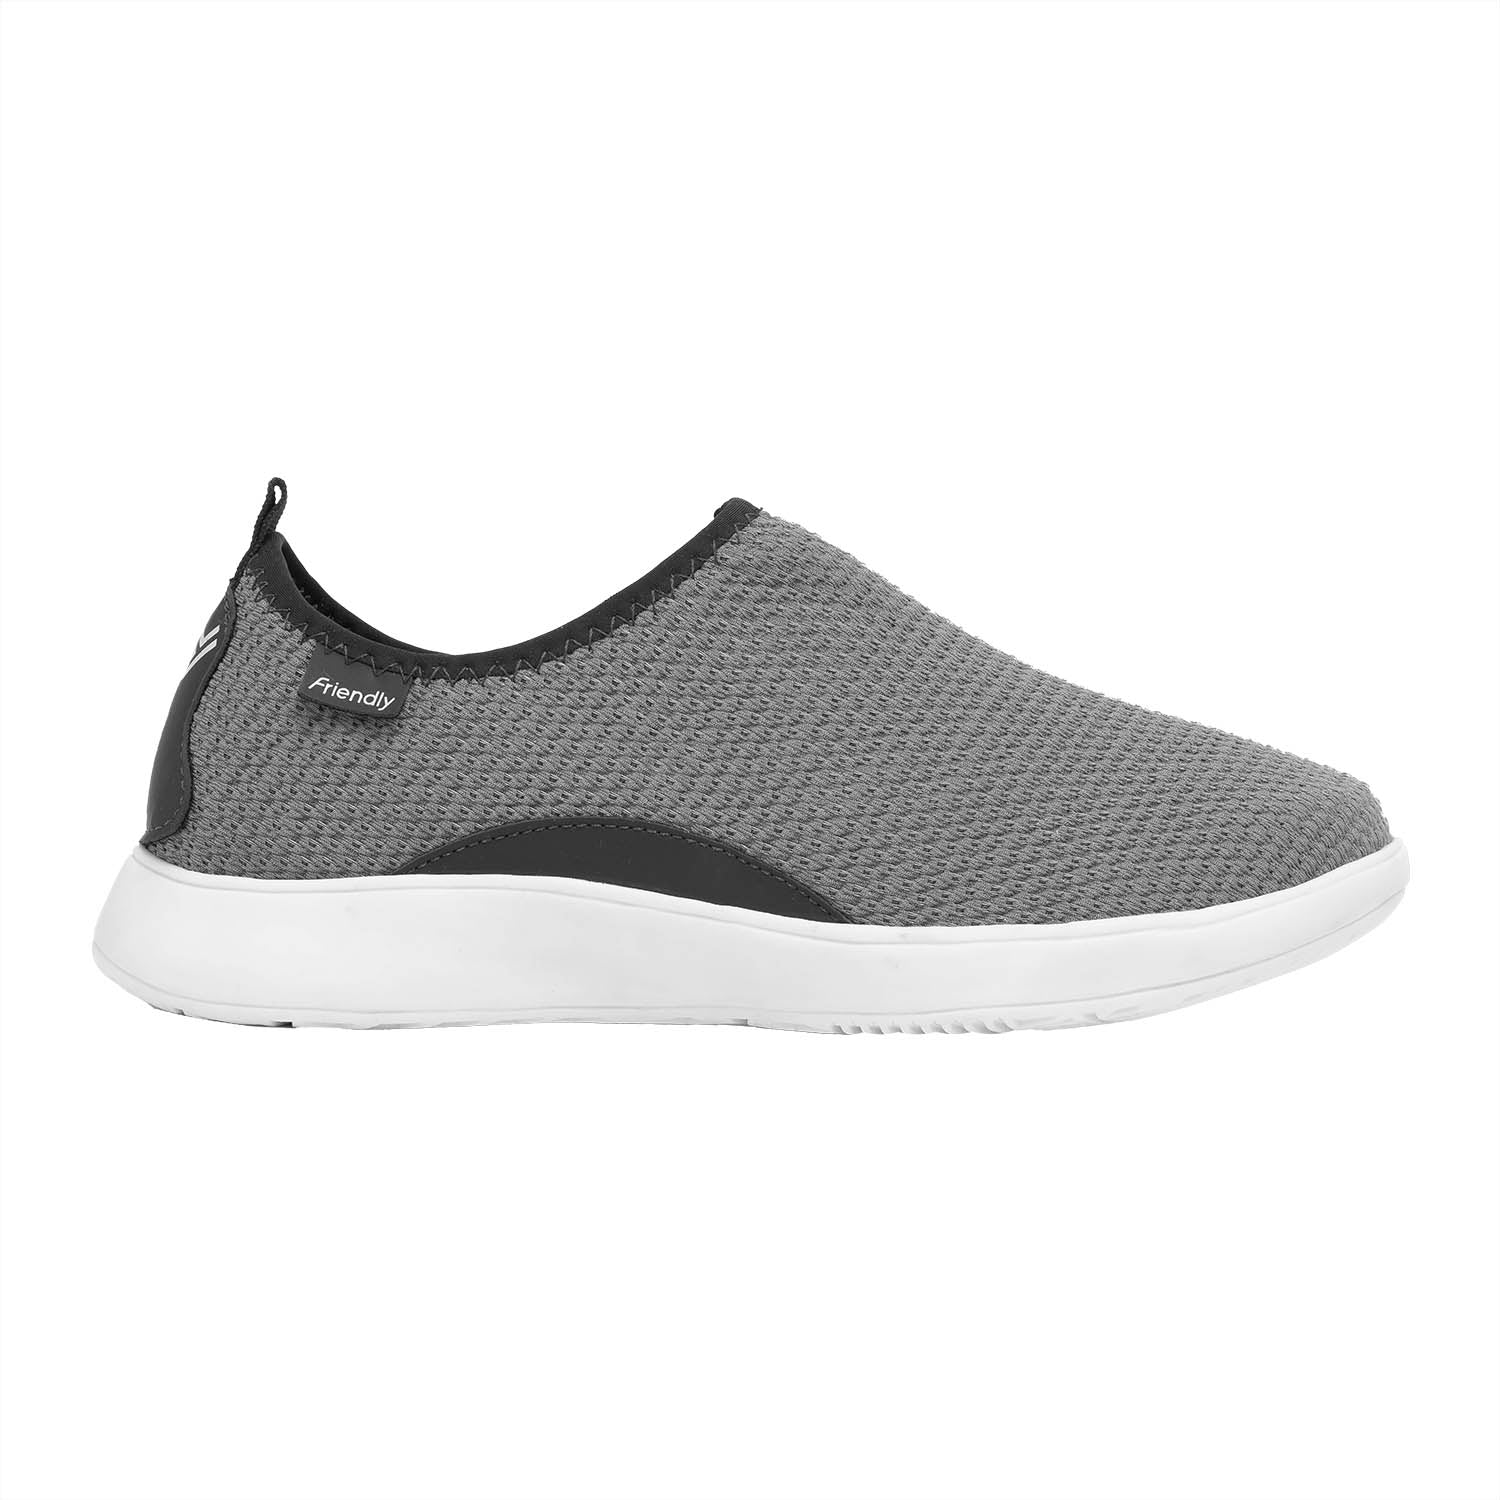 Women's Friendly Flex / Castlerock Grey Shoe